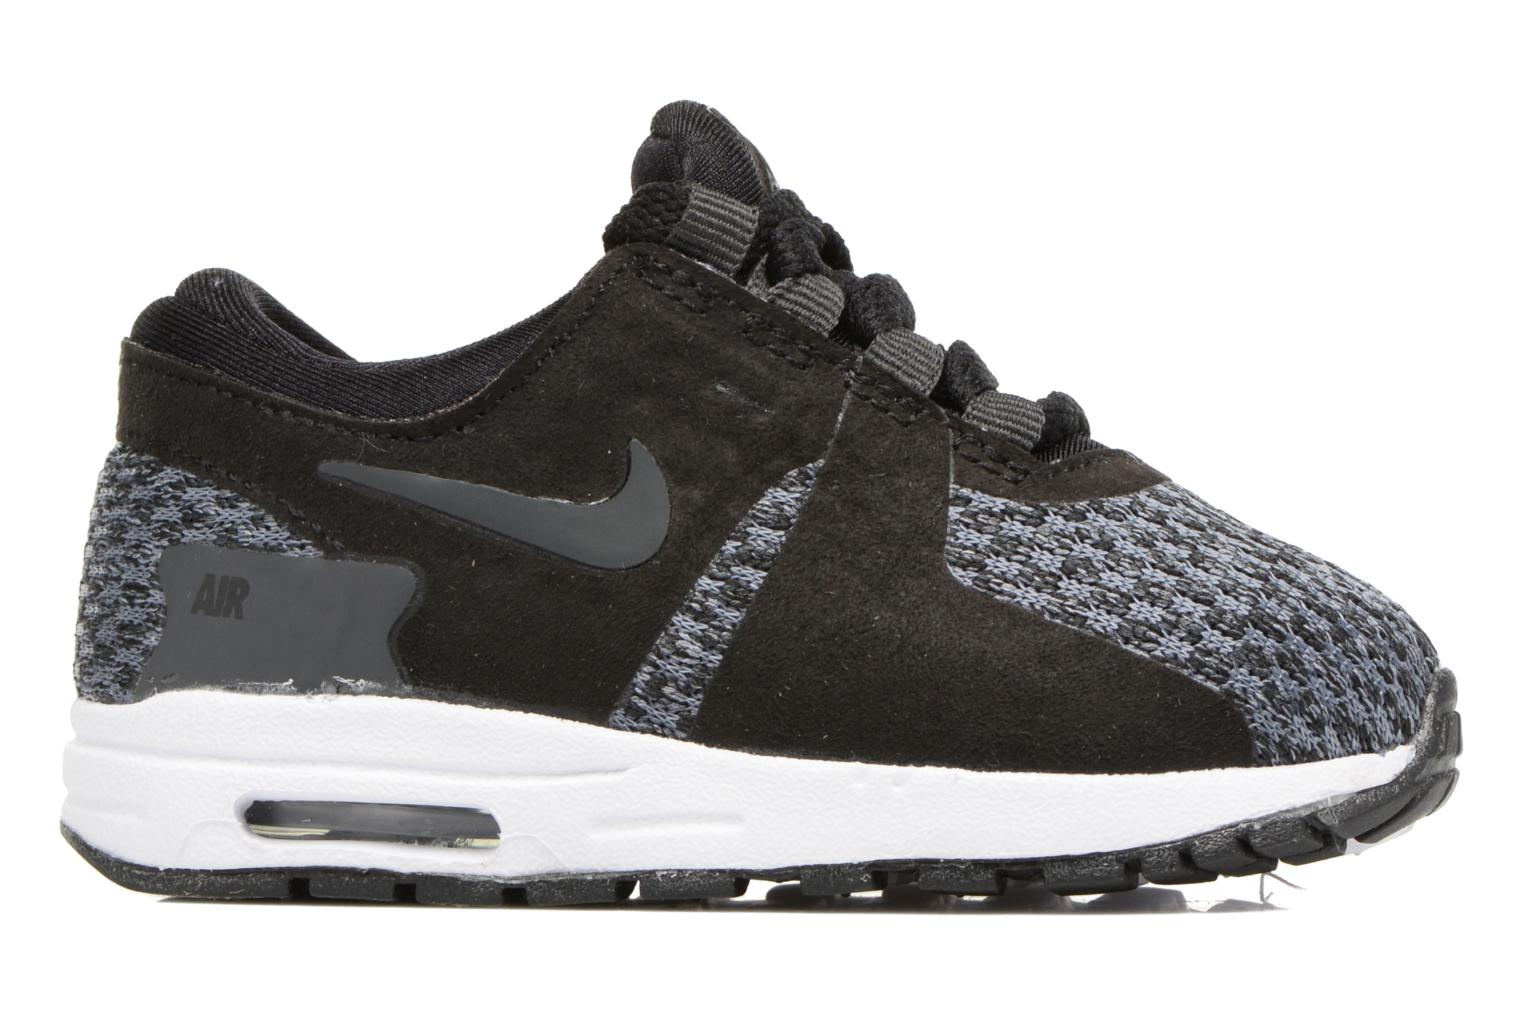 Nike Air Max Zero Se (Td) Black/Anthracite-Cool Grey-White